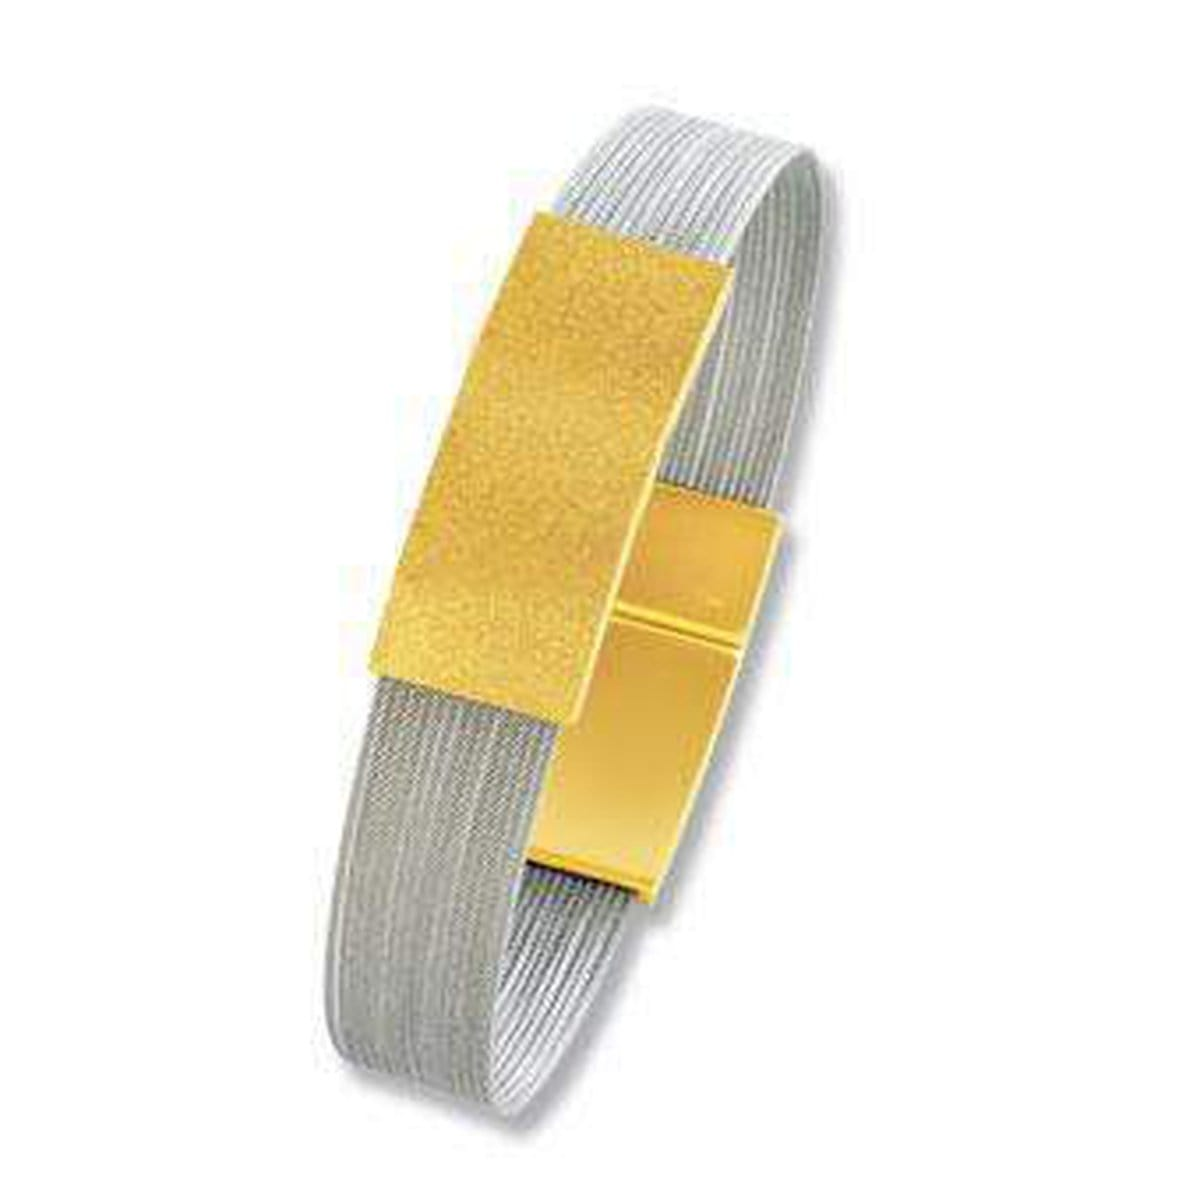 Lemans Stainless Steel Bracelet - 60150506